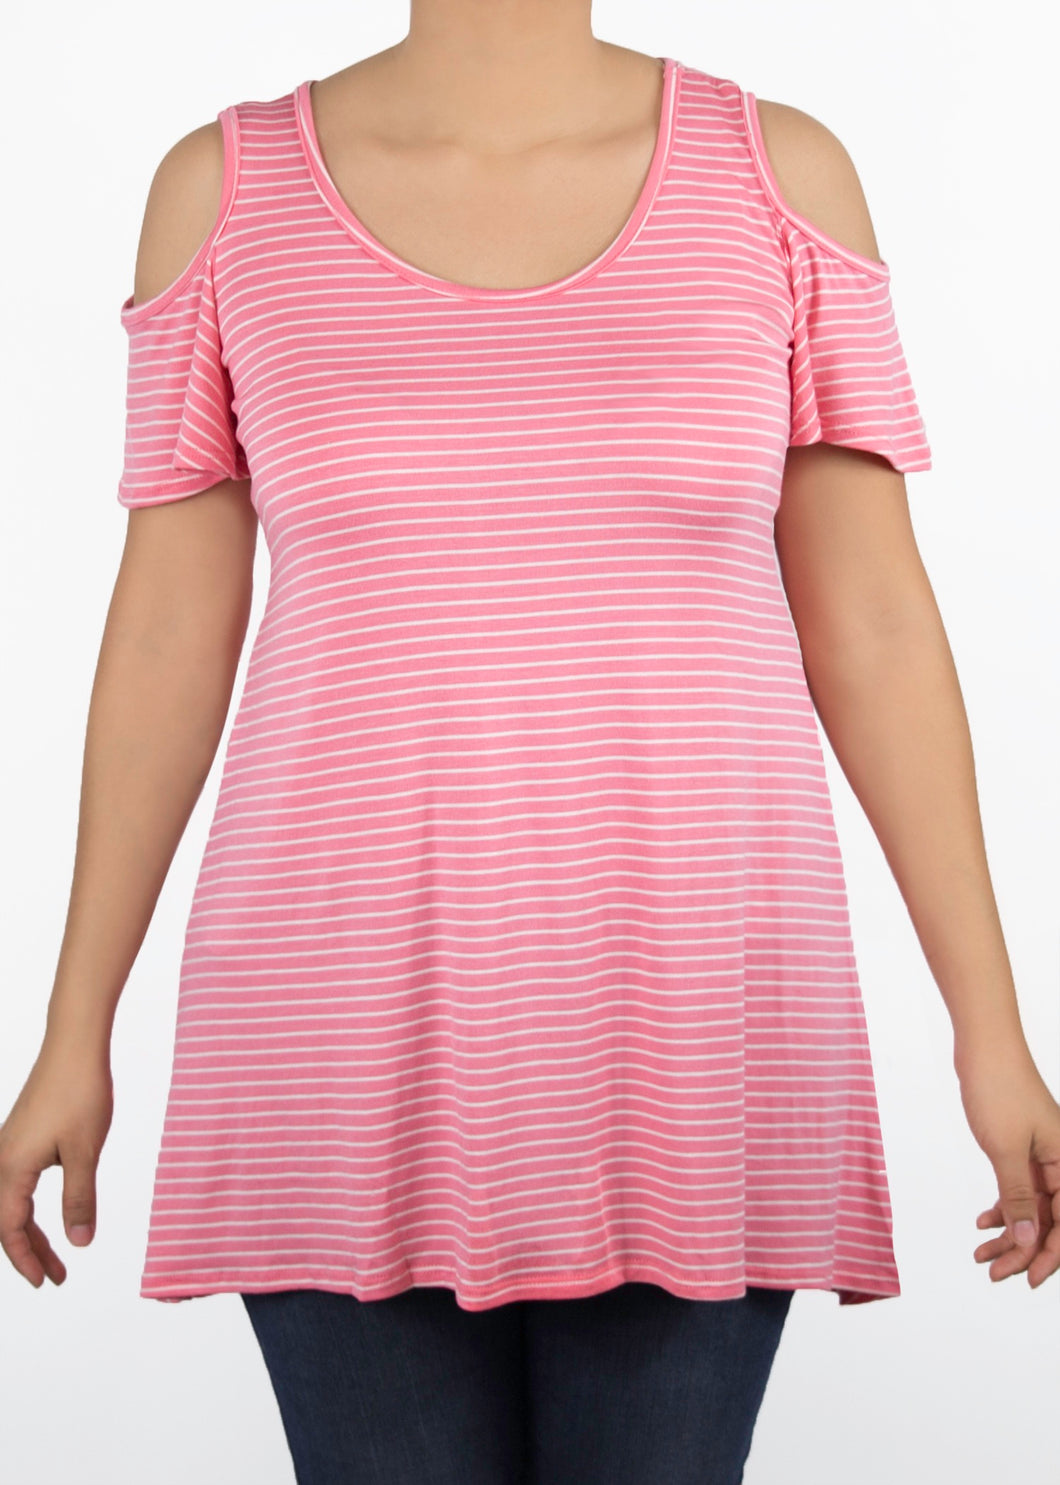 Plumeria Top - Pink and White Stripe - (S)